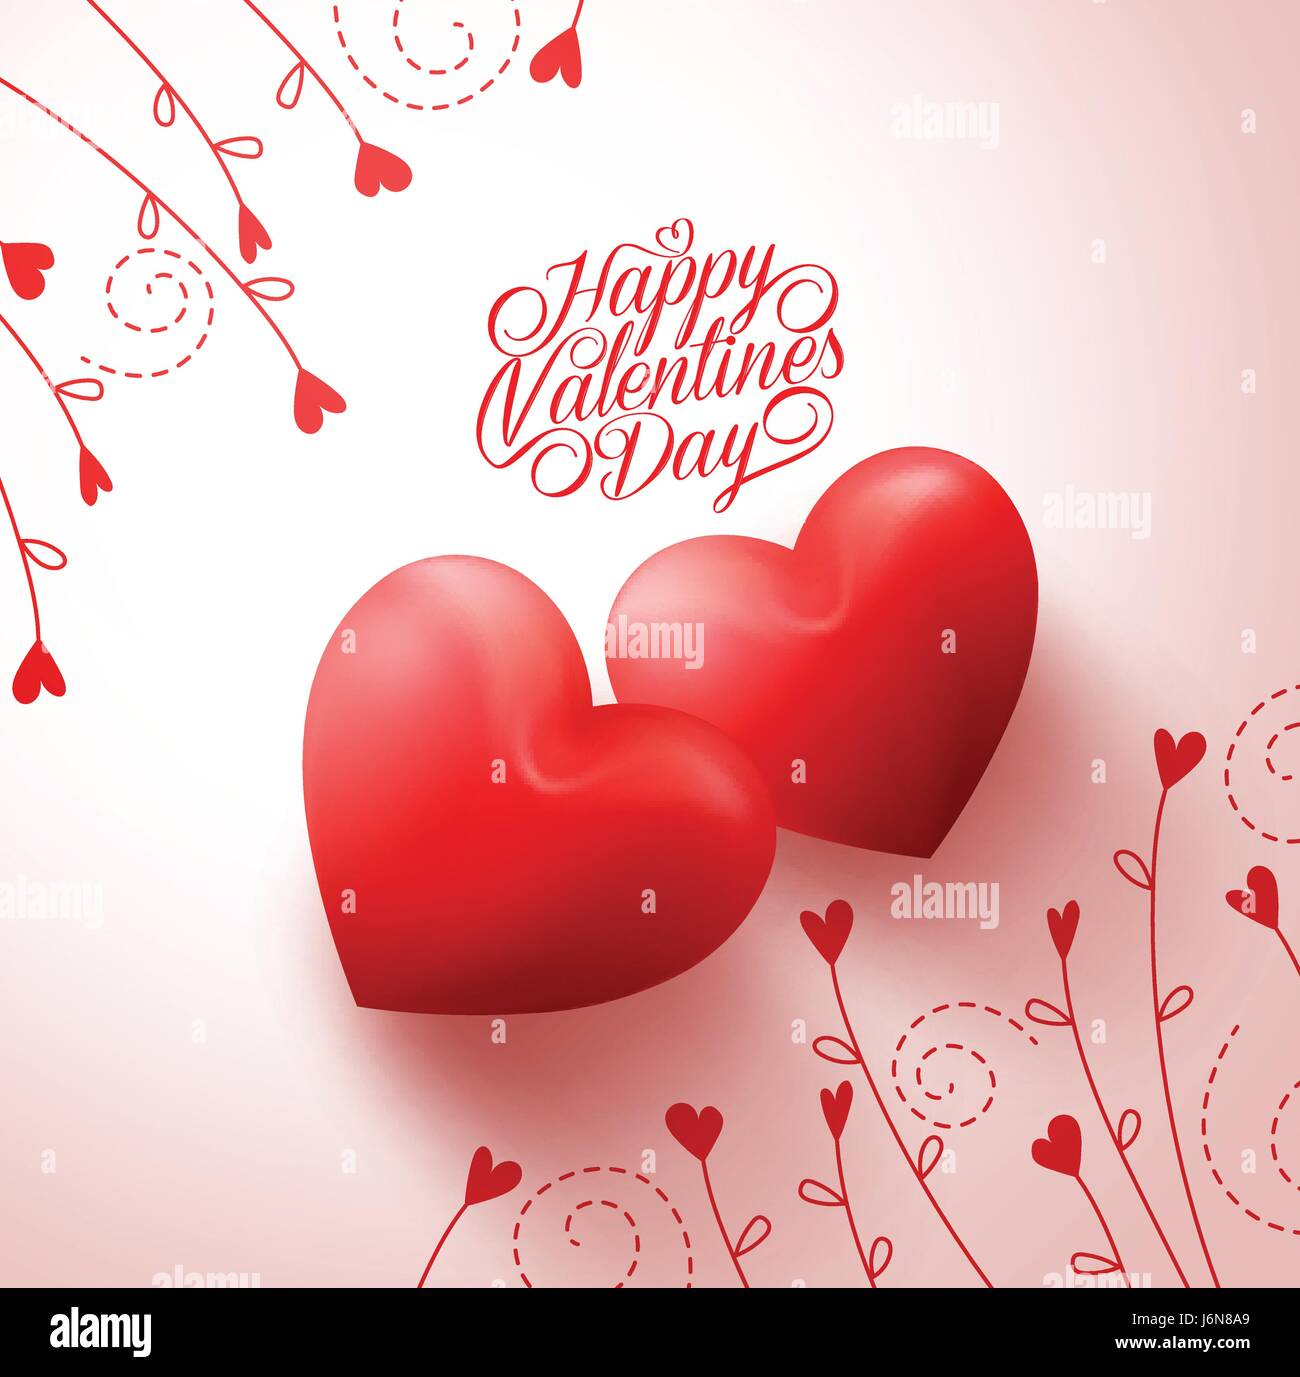 Two red hearts for lovers with happy valentines day greetings two red hearts for lovers with happy valentines day greetings vector in white background with flowers vine pattern vector illustration kristyandbryce Image collections